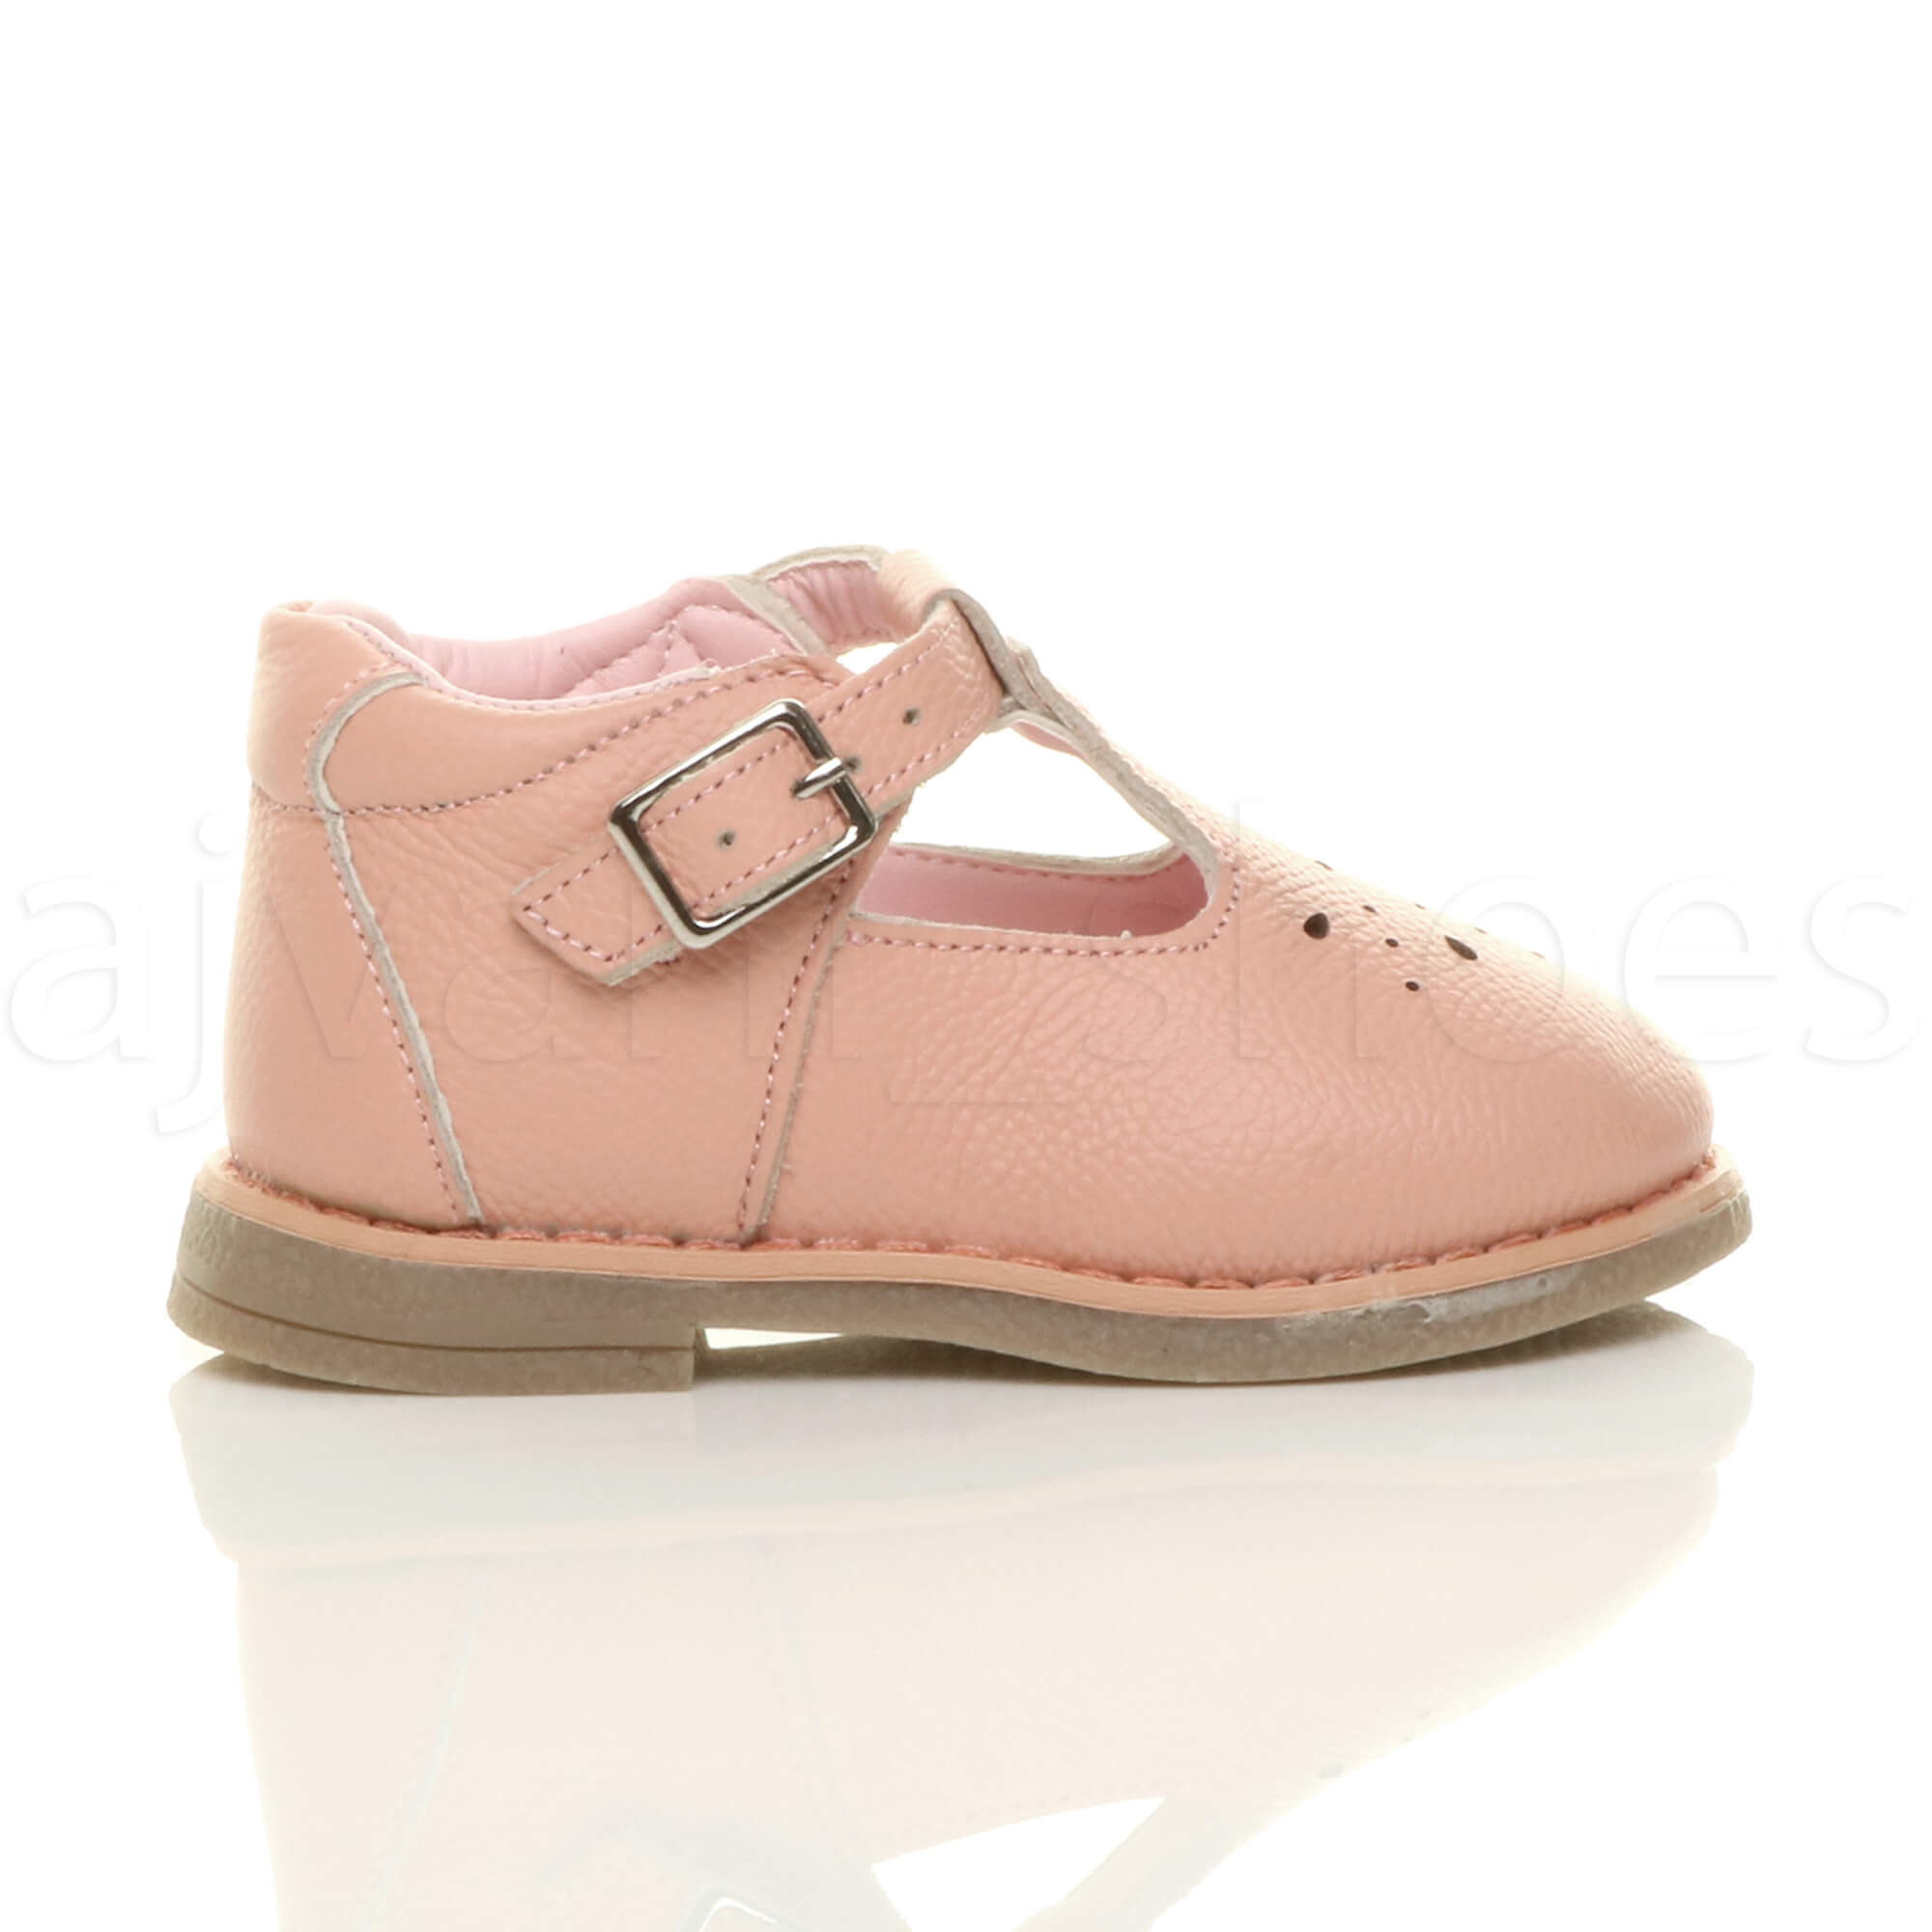 GIRLS-CHILDRENS-INFANT-TODDLER-LOW-HEEL-LEATHER-T-BAR-FLEXIBLE-PARTY-SHOES-SIZE